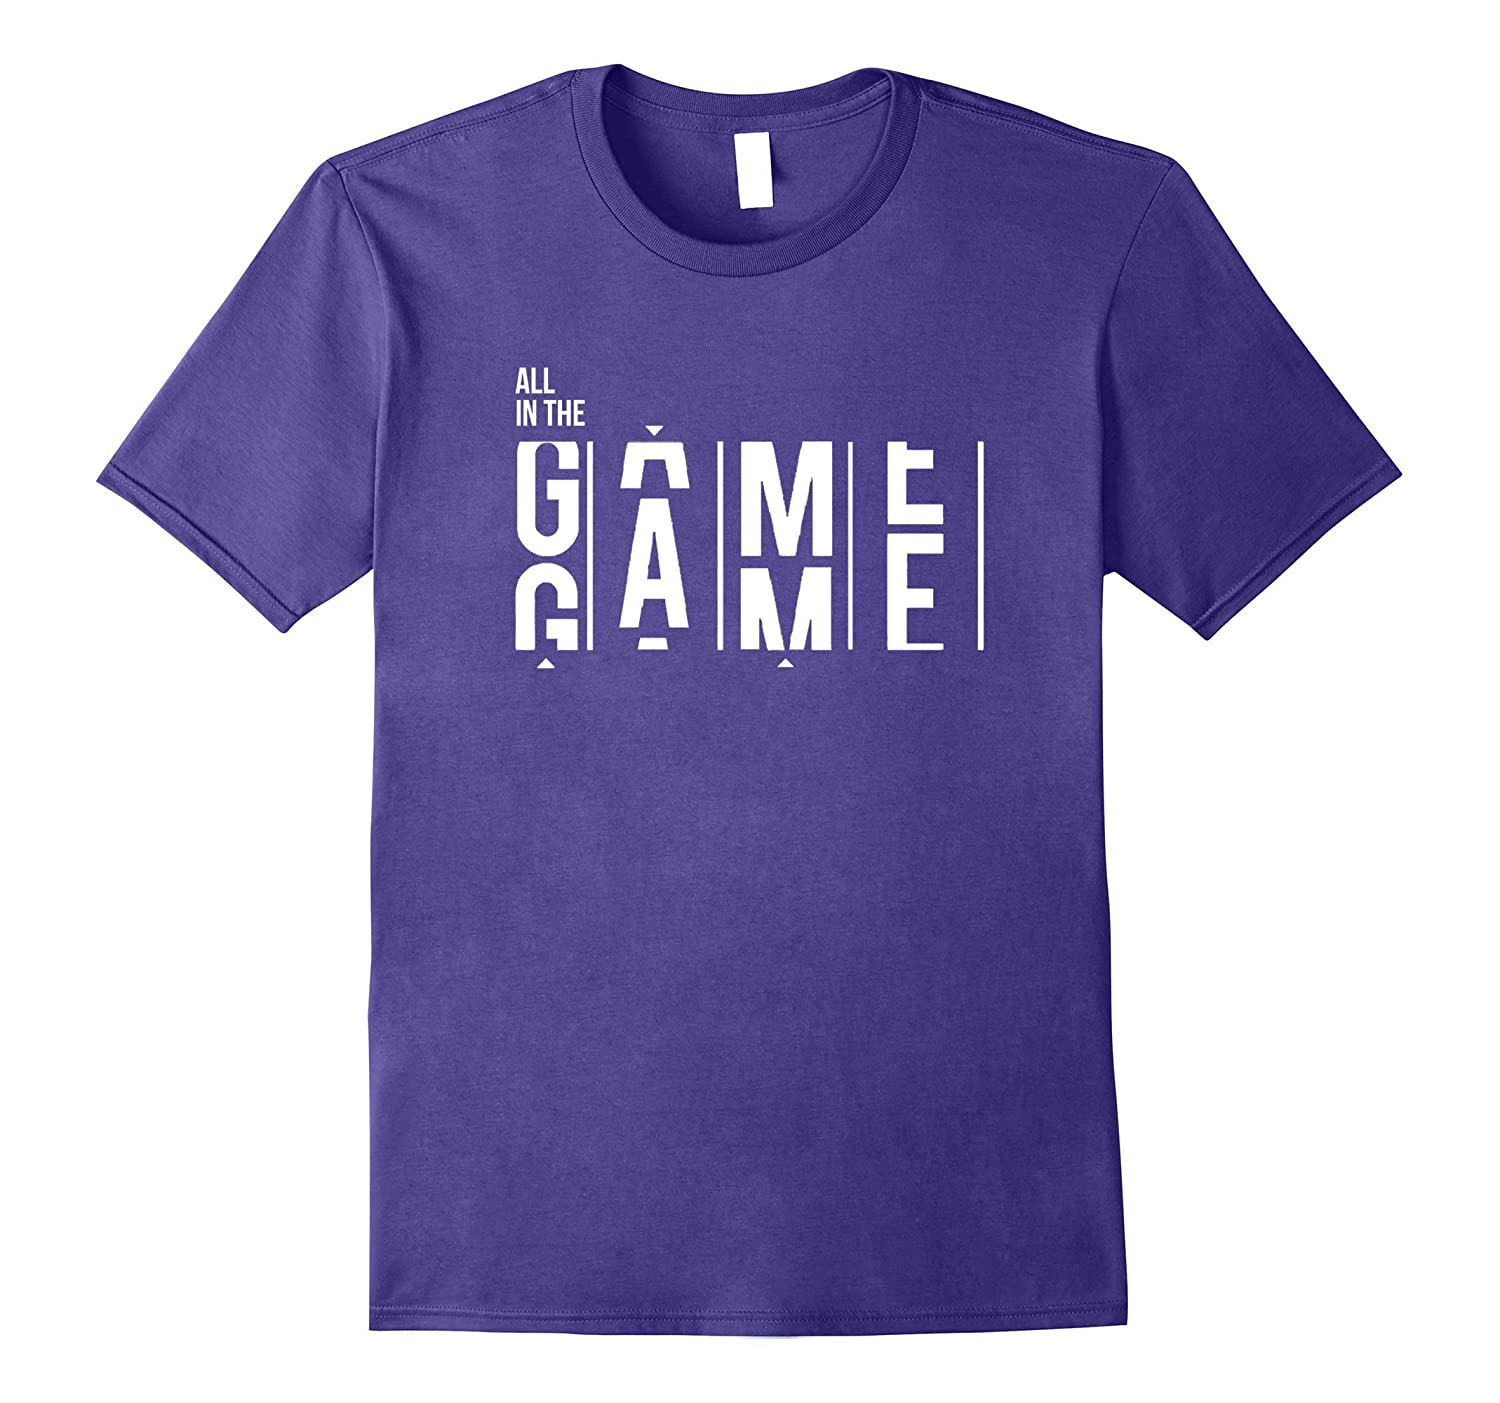 All In The Game – Player Game Quote & Saying Tee Shirt